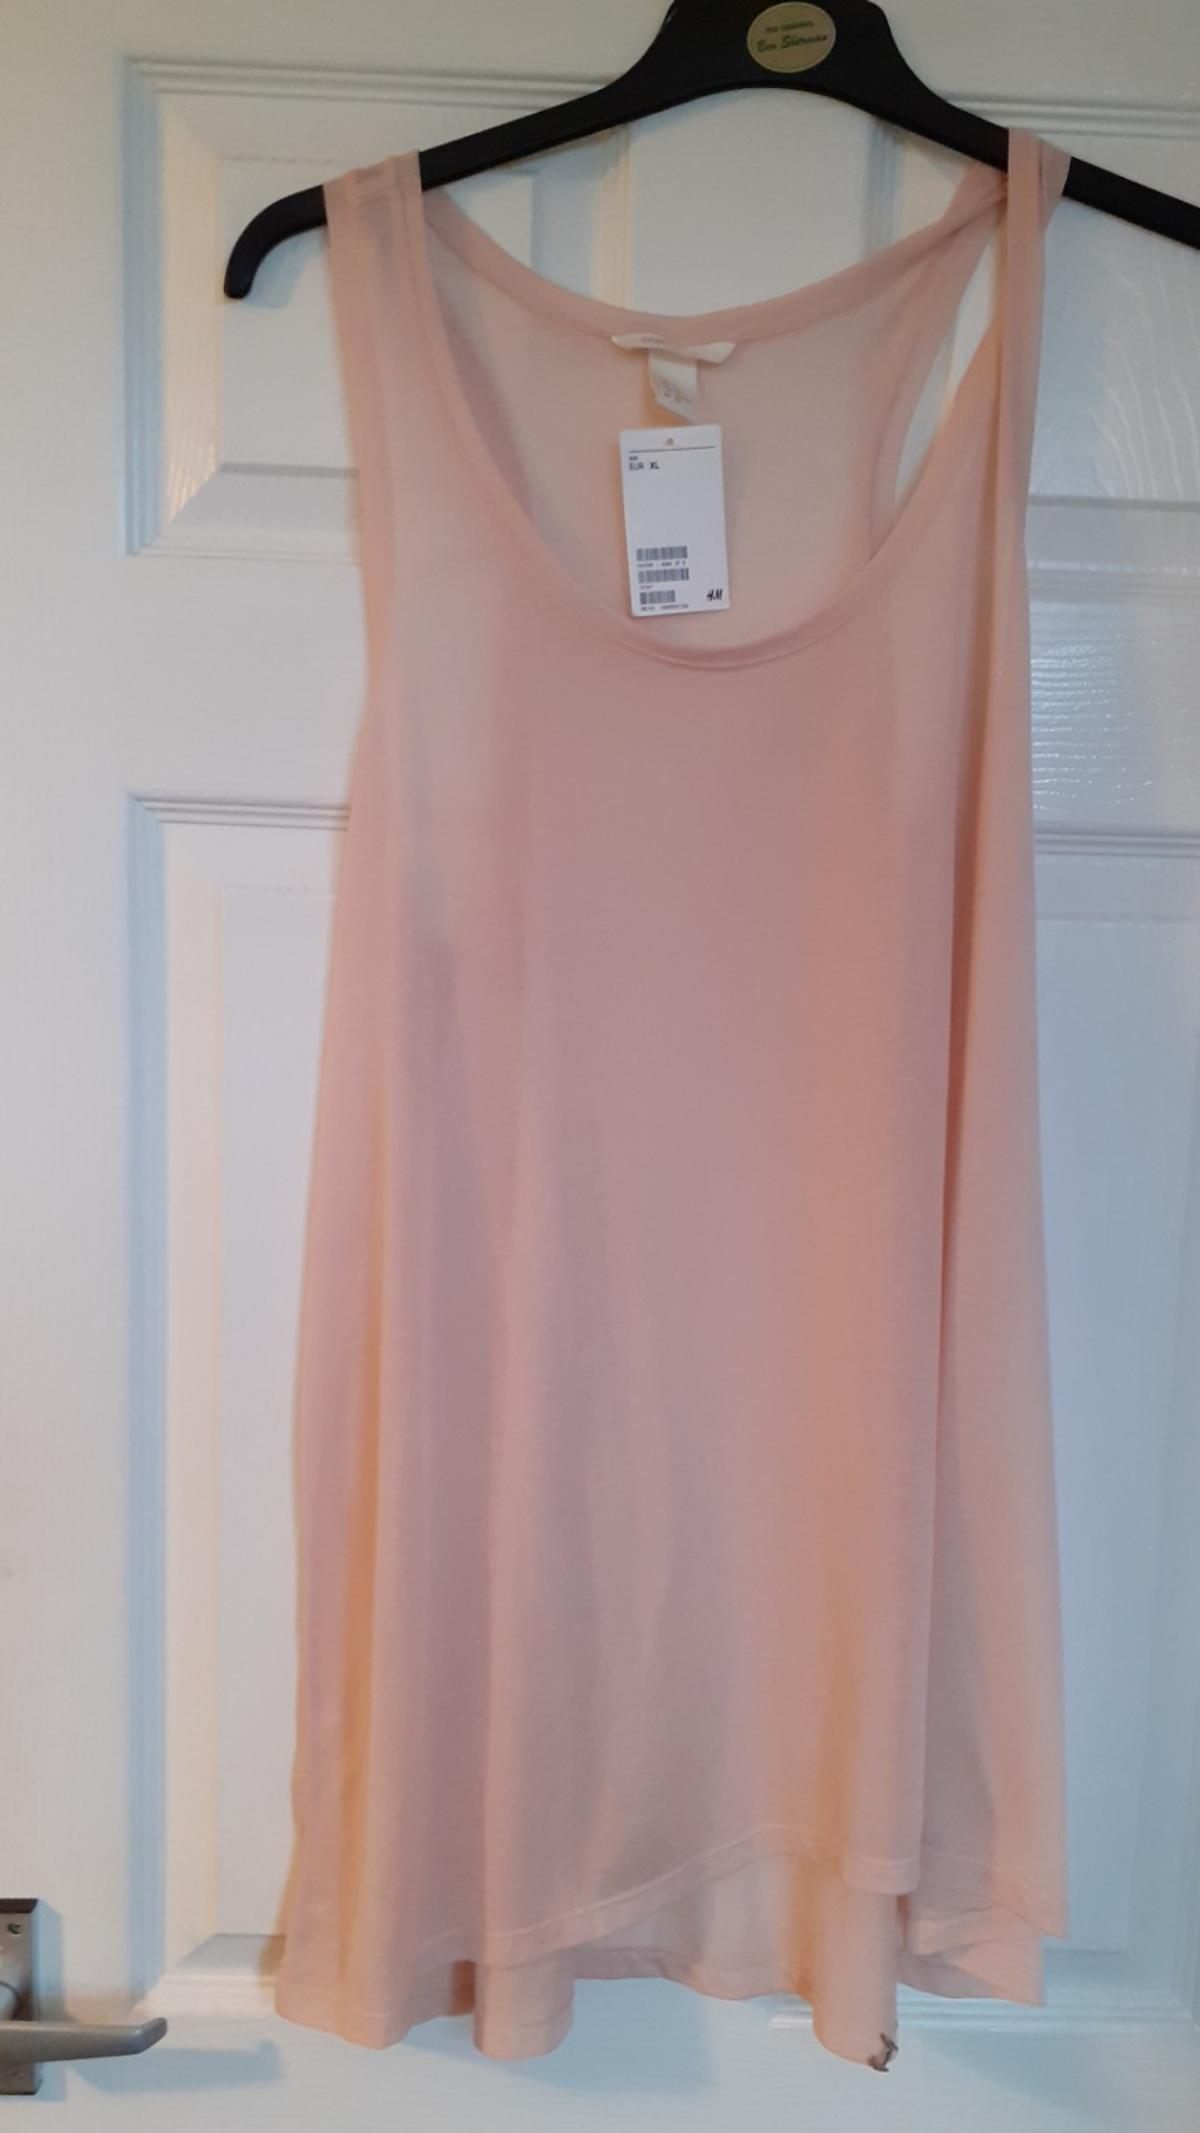 pale pink size xl h+m top bnwt collection only